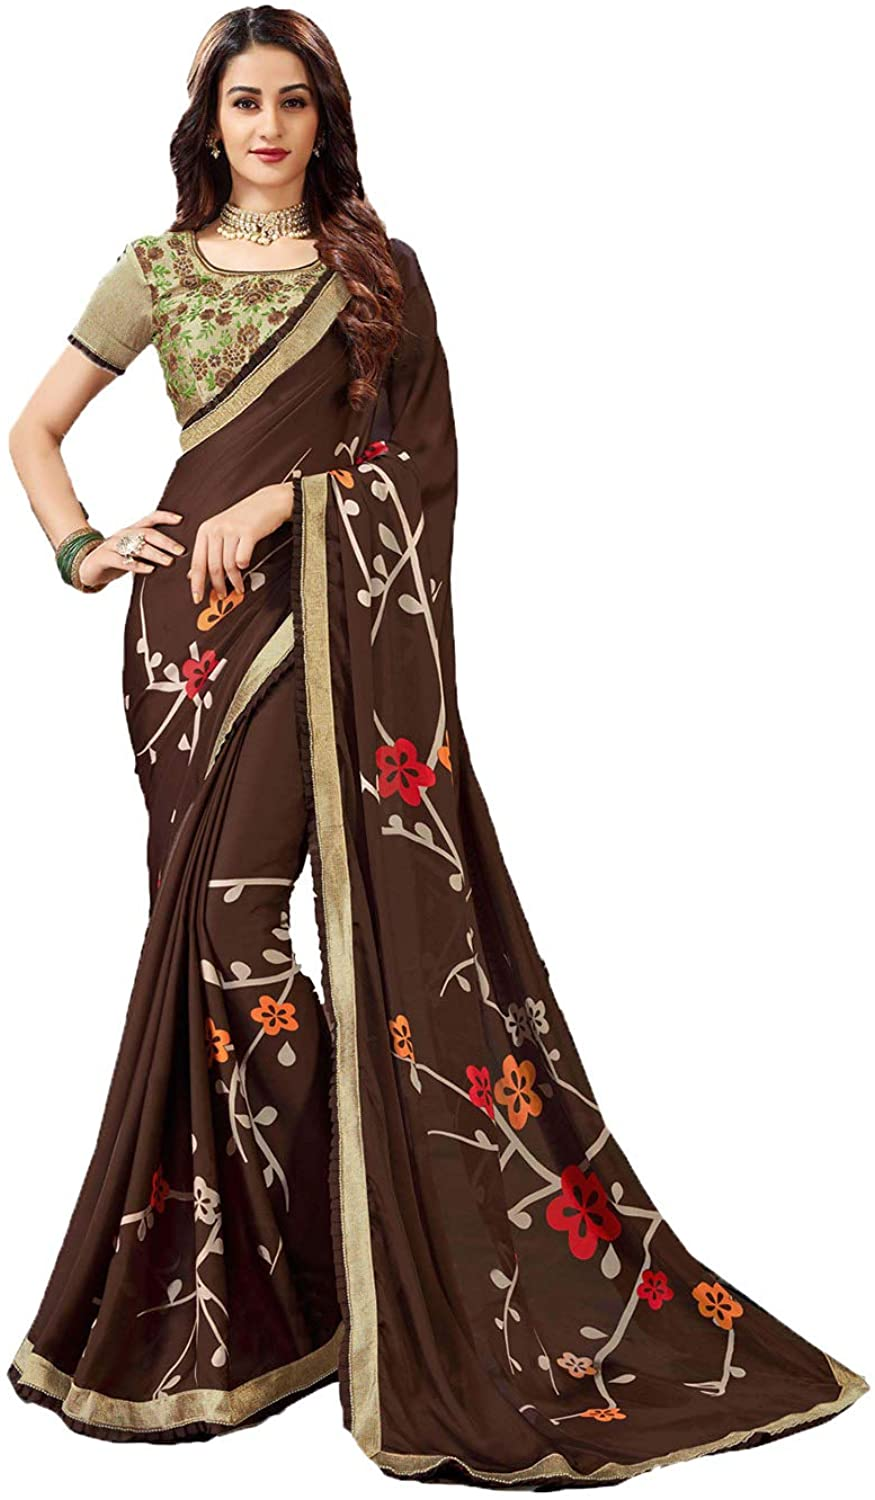 Saree for Women Bollywood Wedding Designer Brown Sari with Unstitched Blouse. ICW2535-2